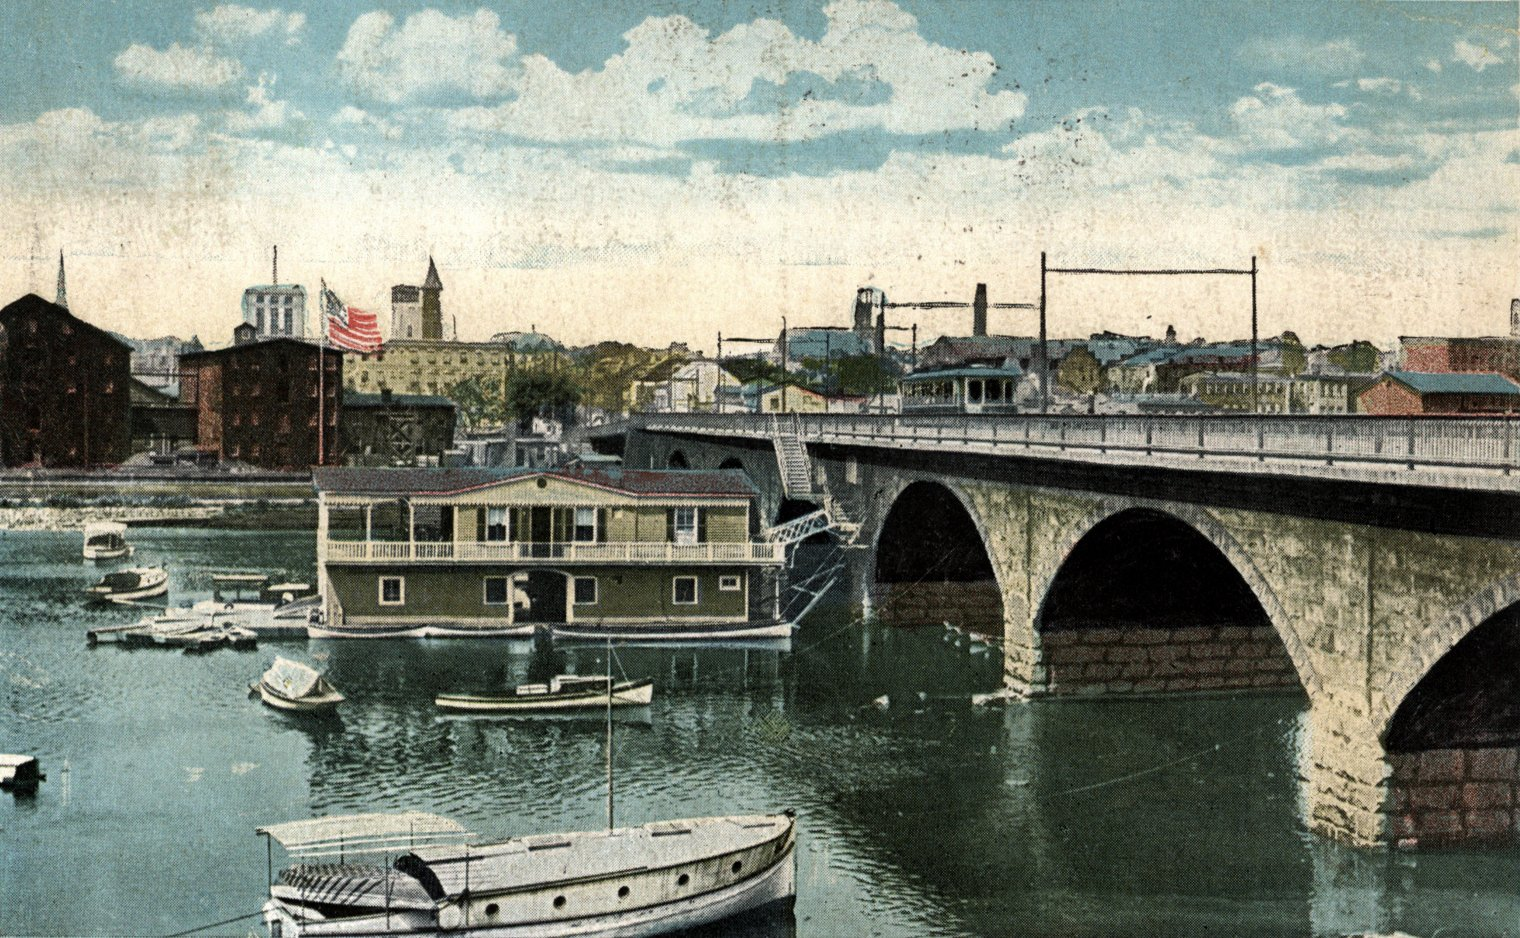 Postcard (ca. 1930) showing the Albany Street Bridge with the boathouse and trolley service.